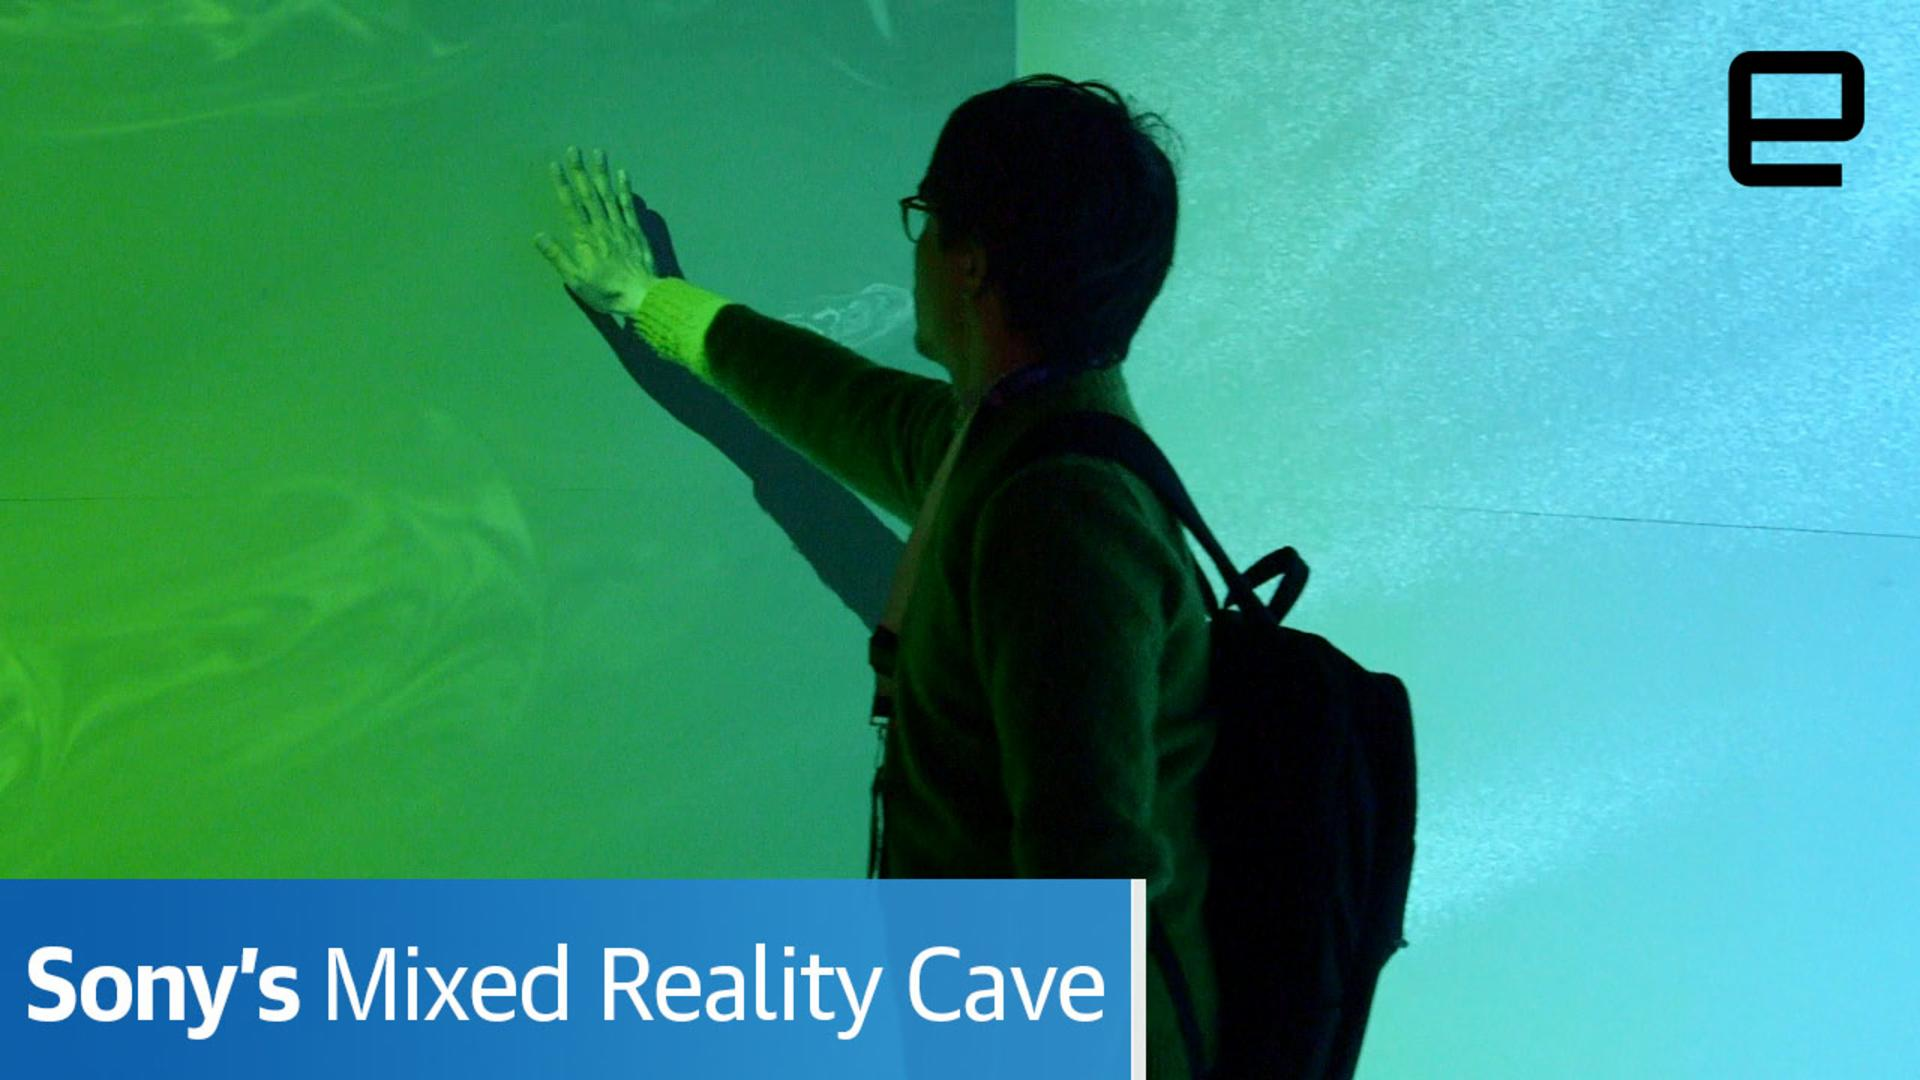 Sony's mixed-reality 'cave' is an immersive experience for groups